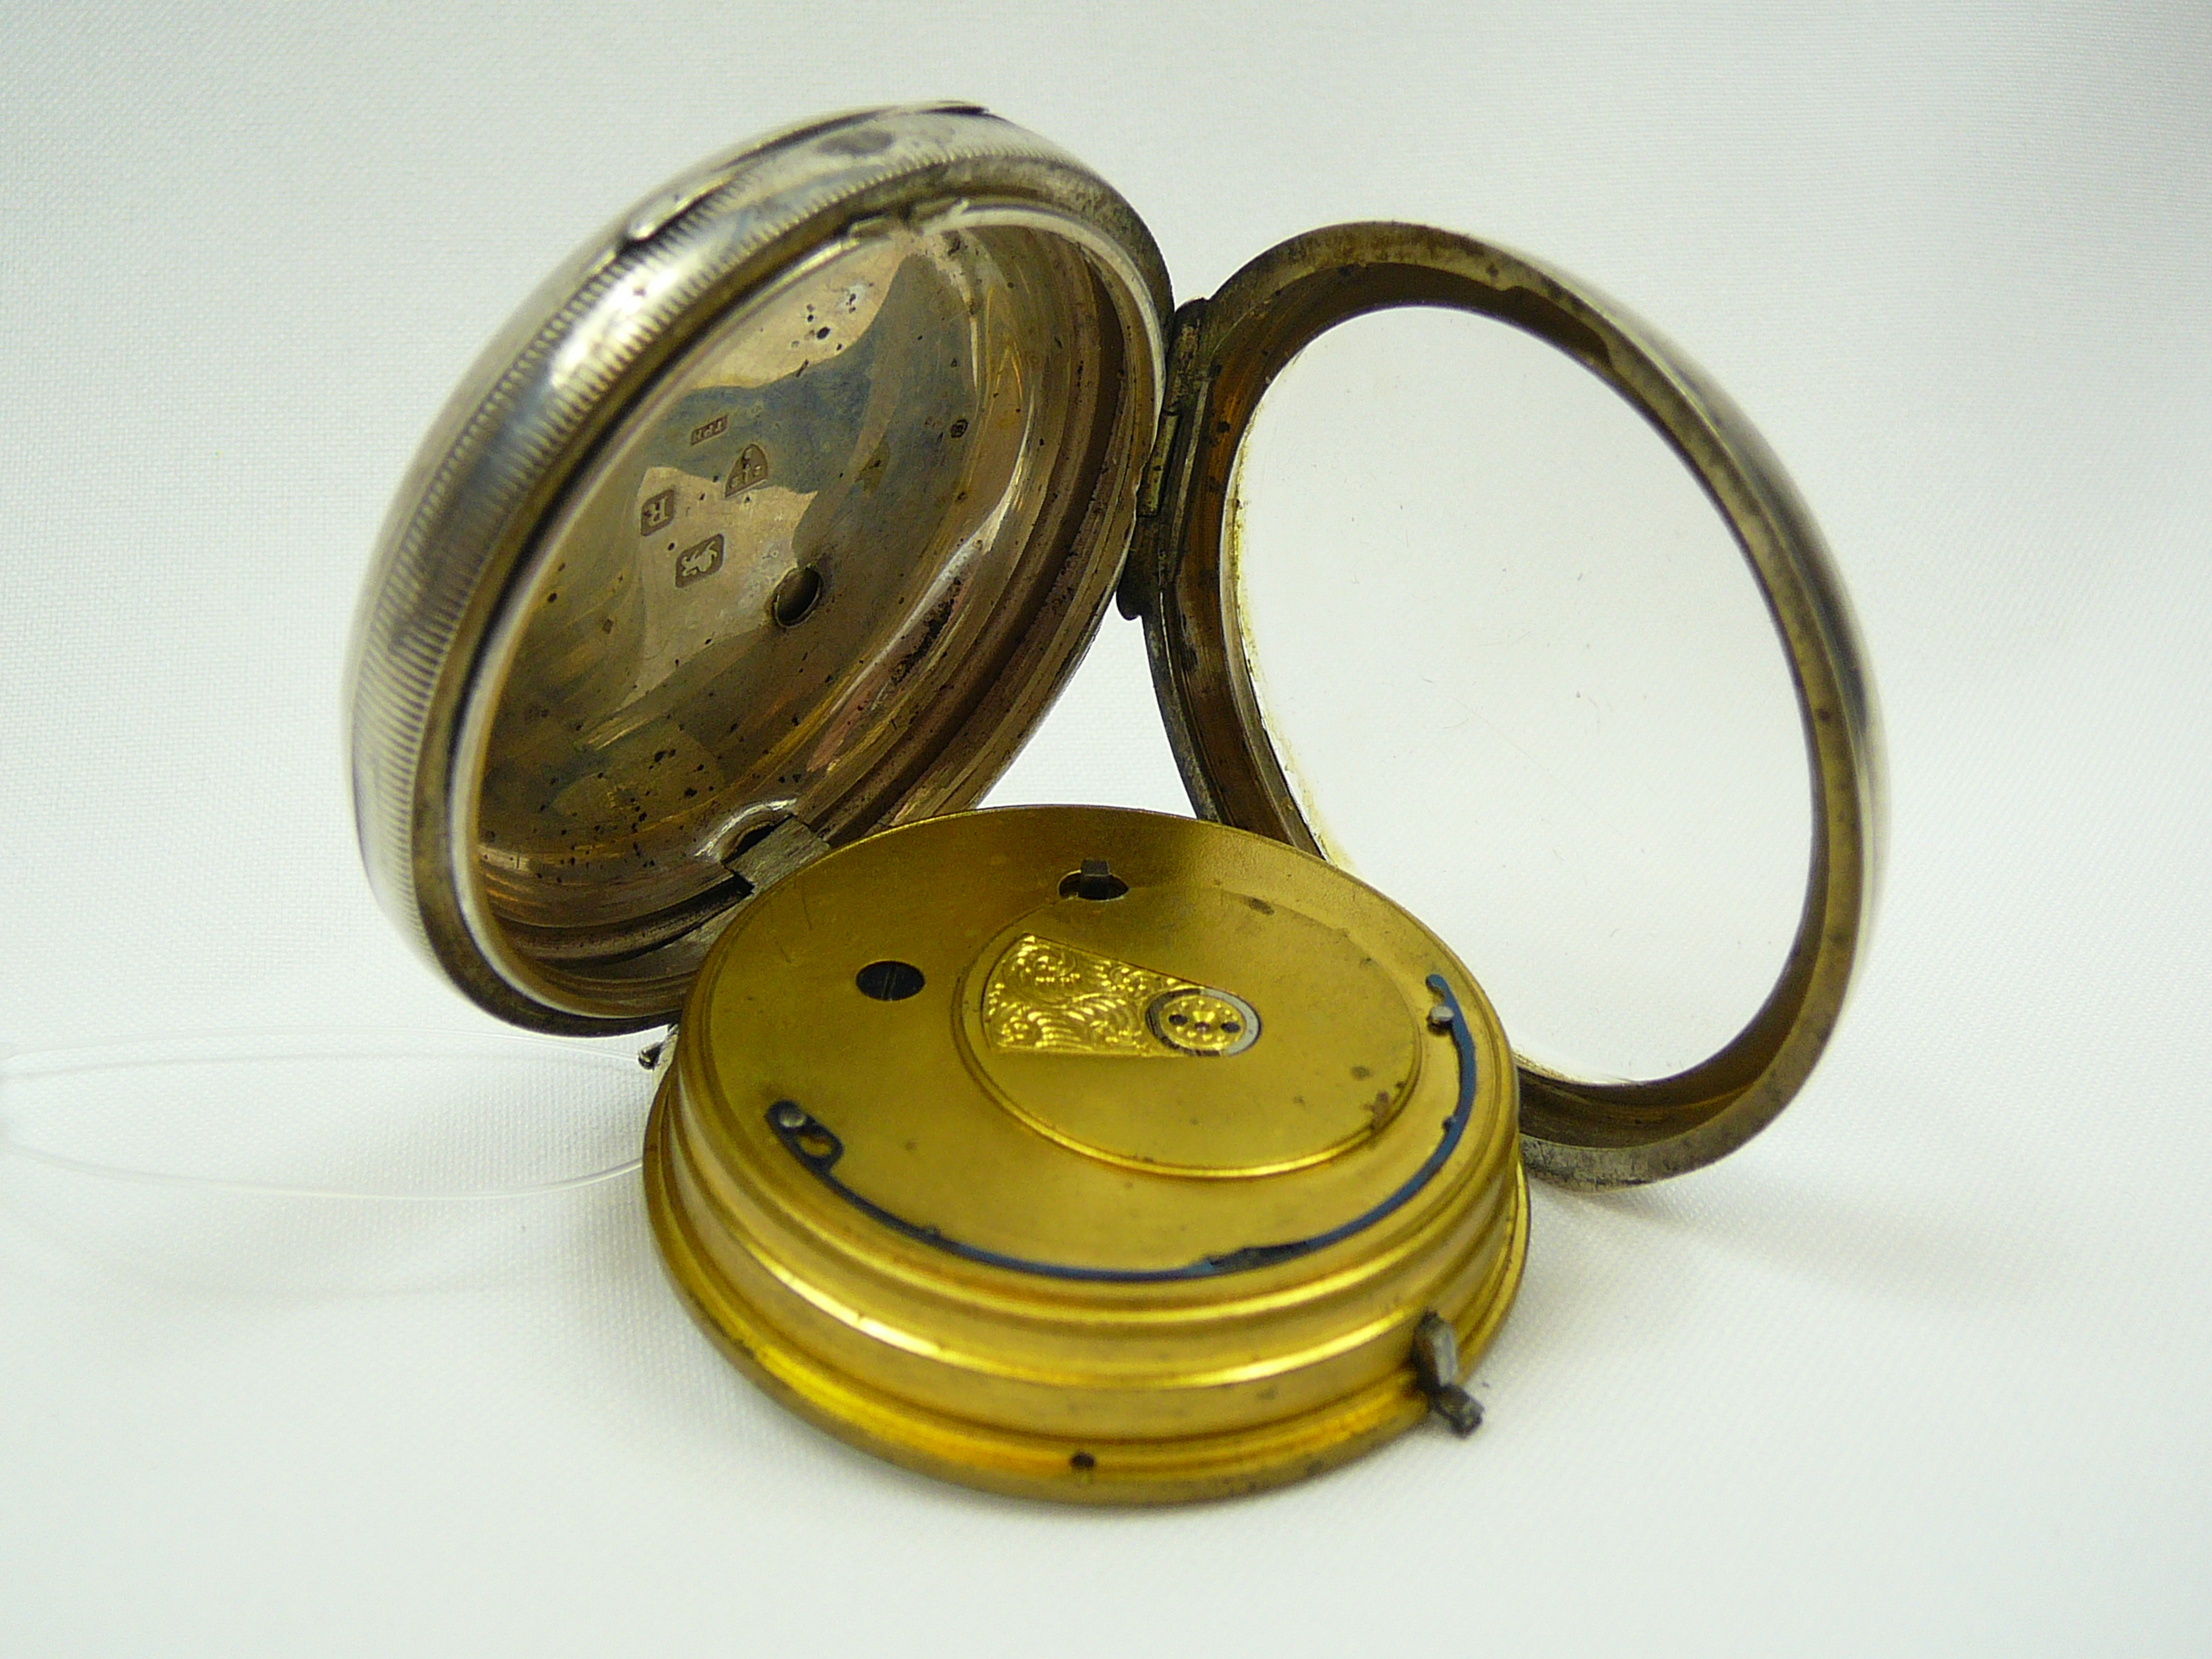 Gents Silver Pocket Watch - Image 4 of 4